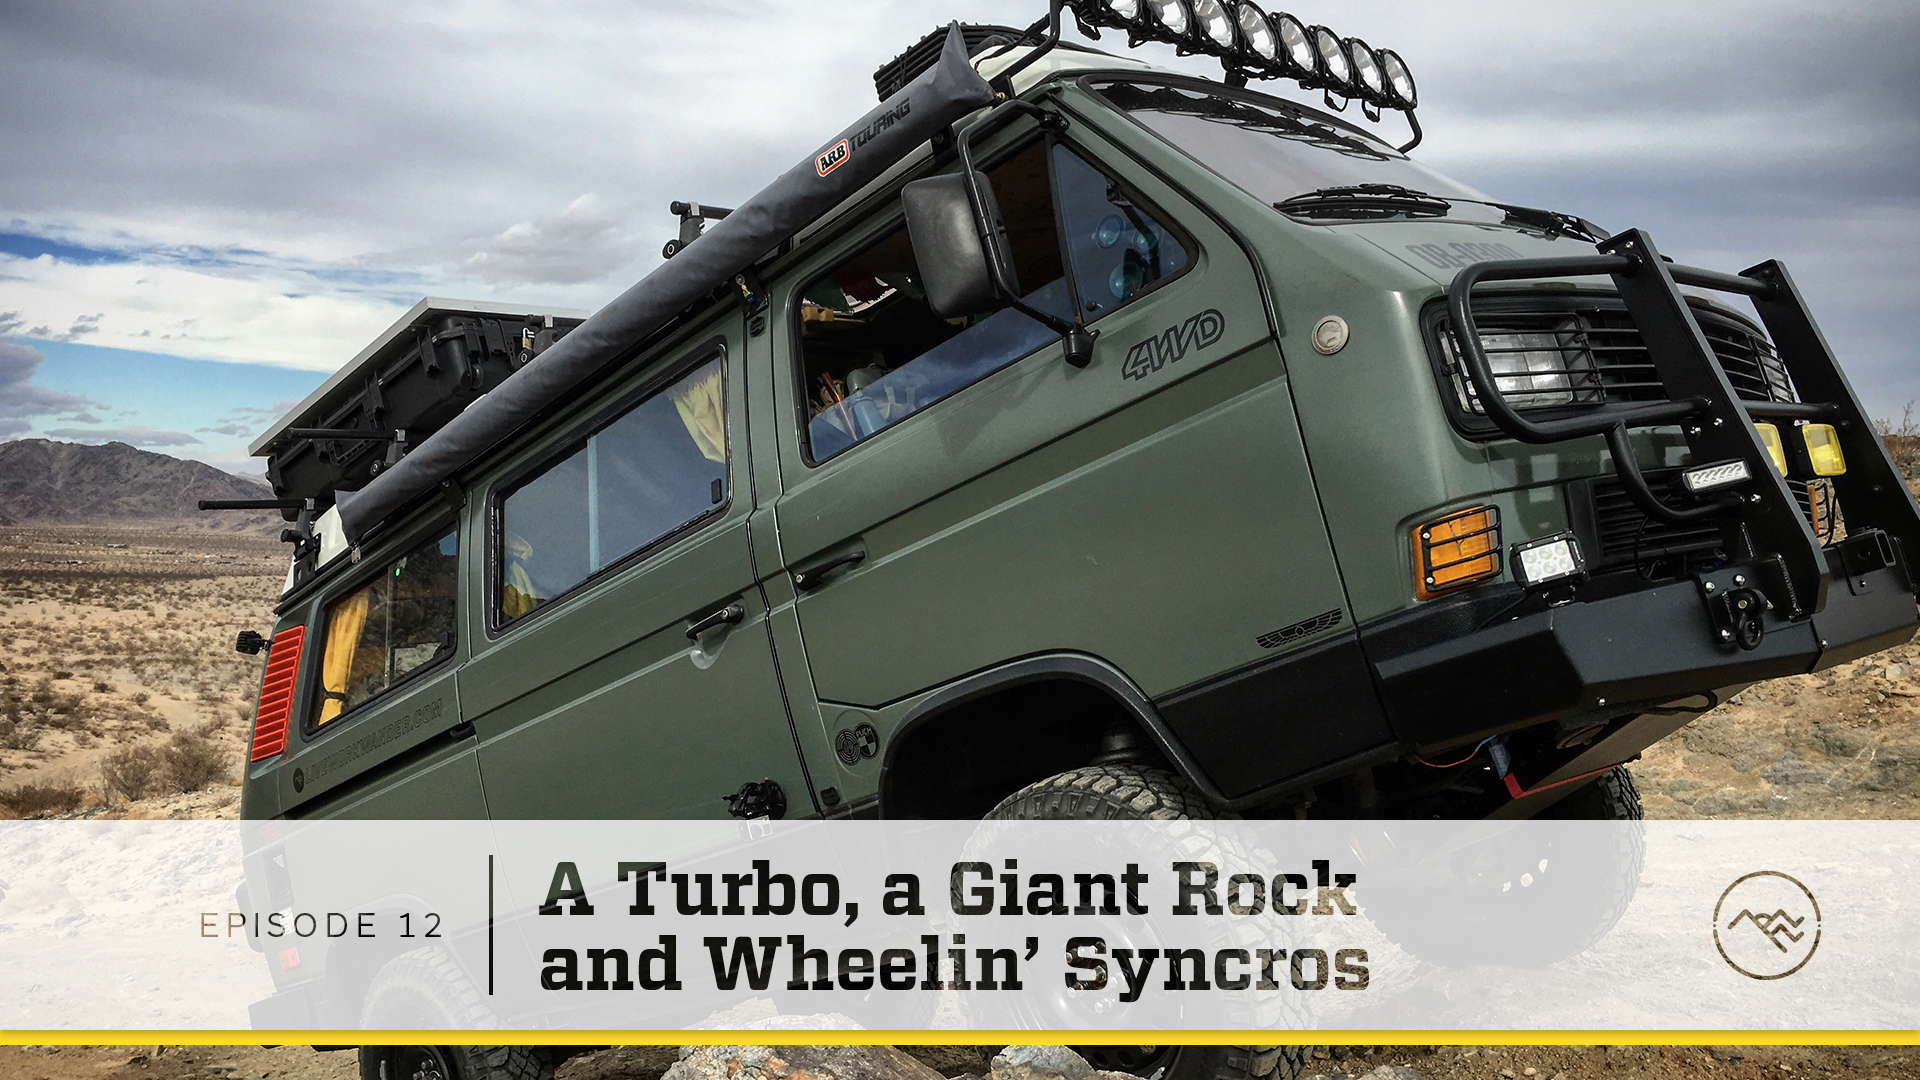 E012 : A Turbo, a Giant Rock, and Wheelin' Syncros